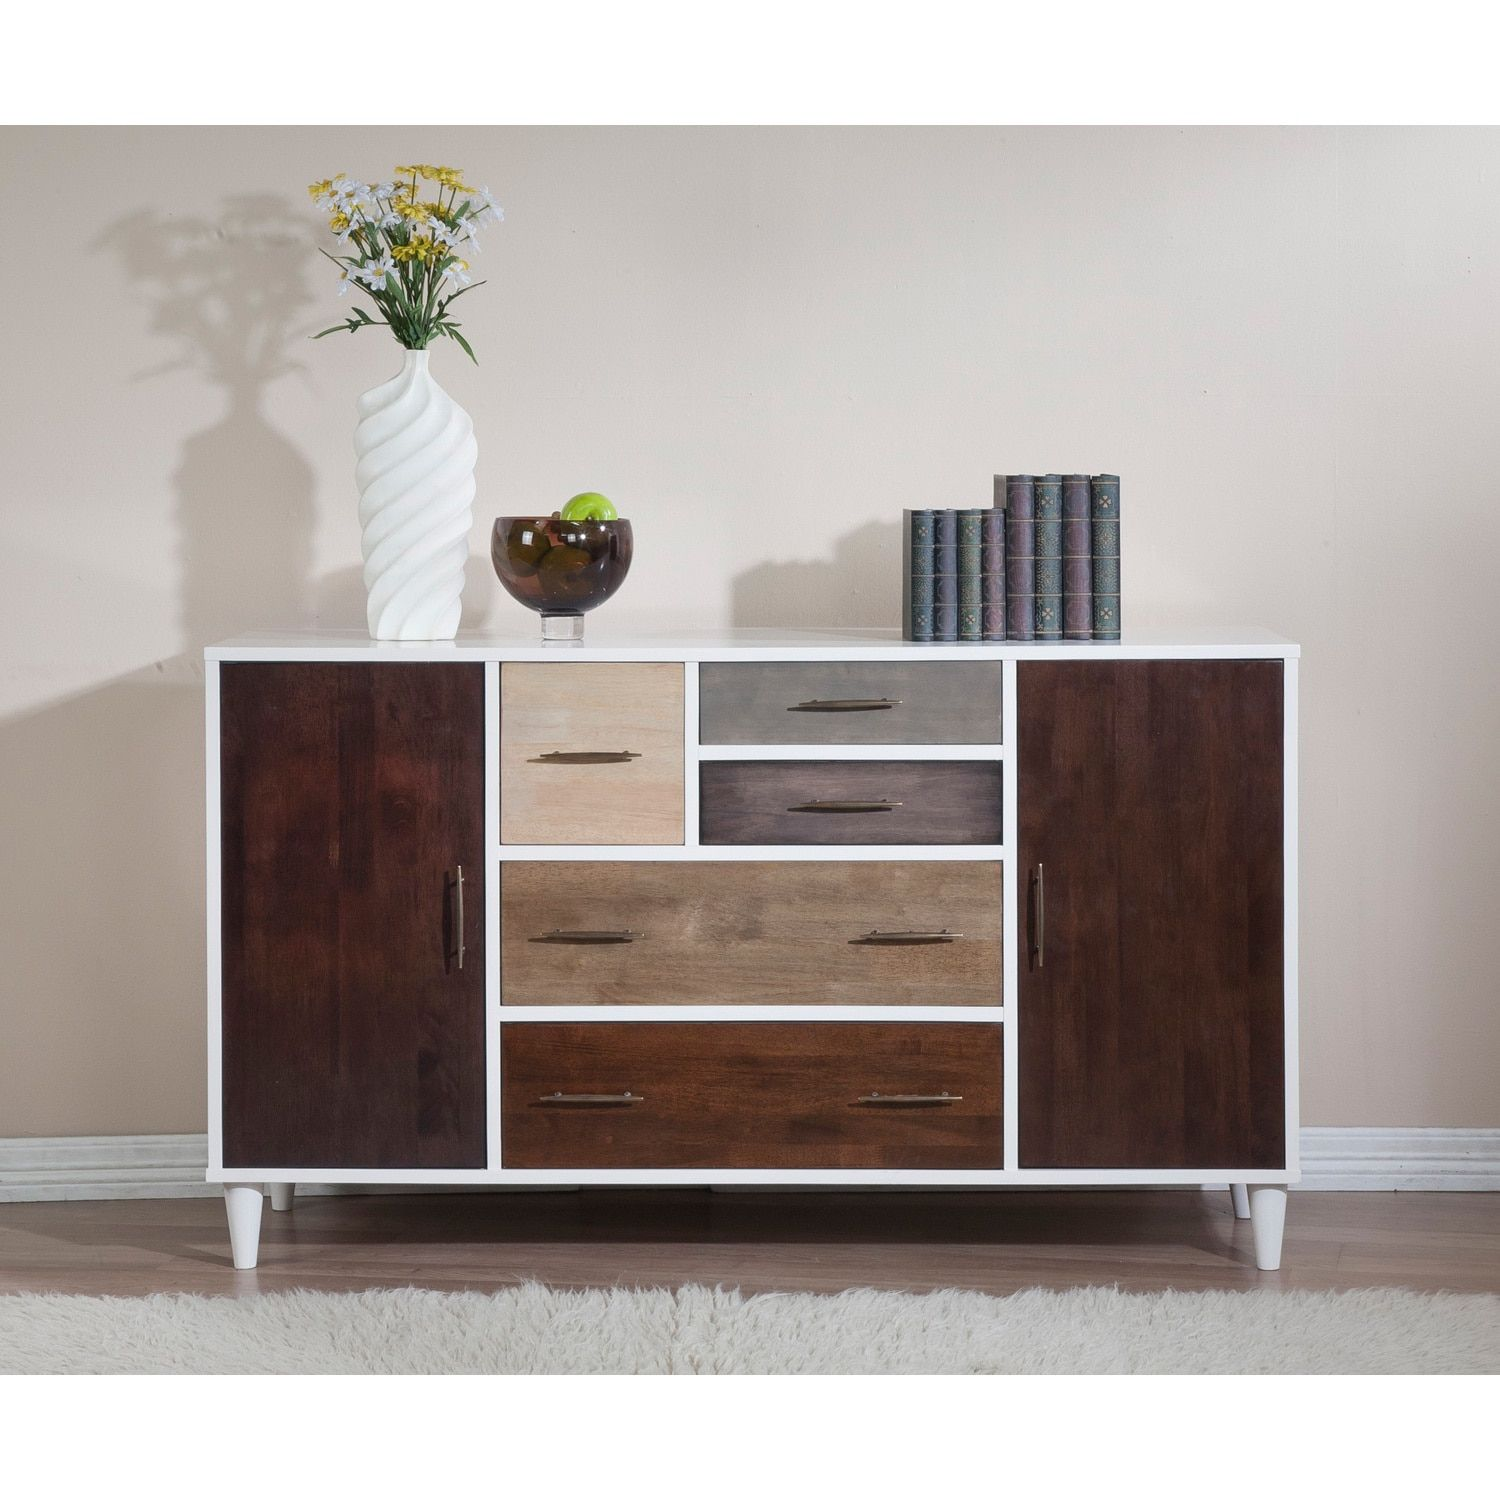 Christian Multi Finish Dining Room Buffet By I Love Living